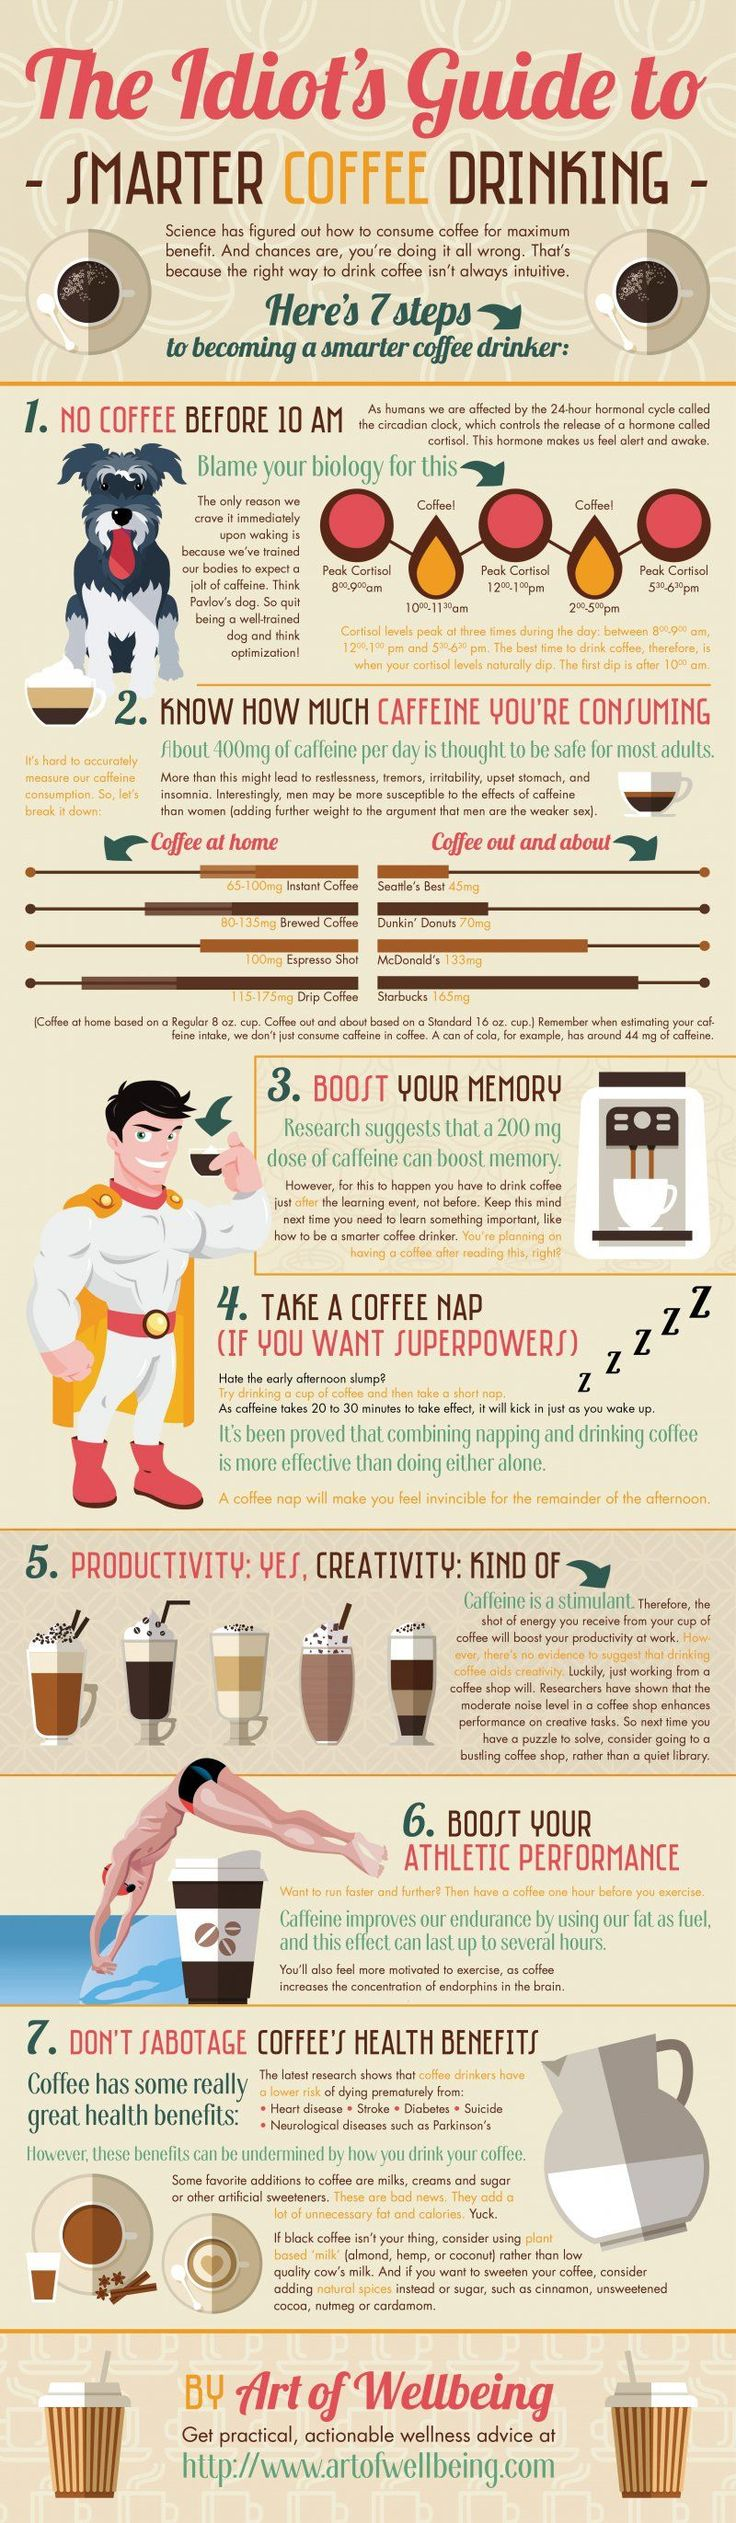 The Idiot's Guide to Smarter Coffee Drinking. #coffee #infographic